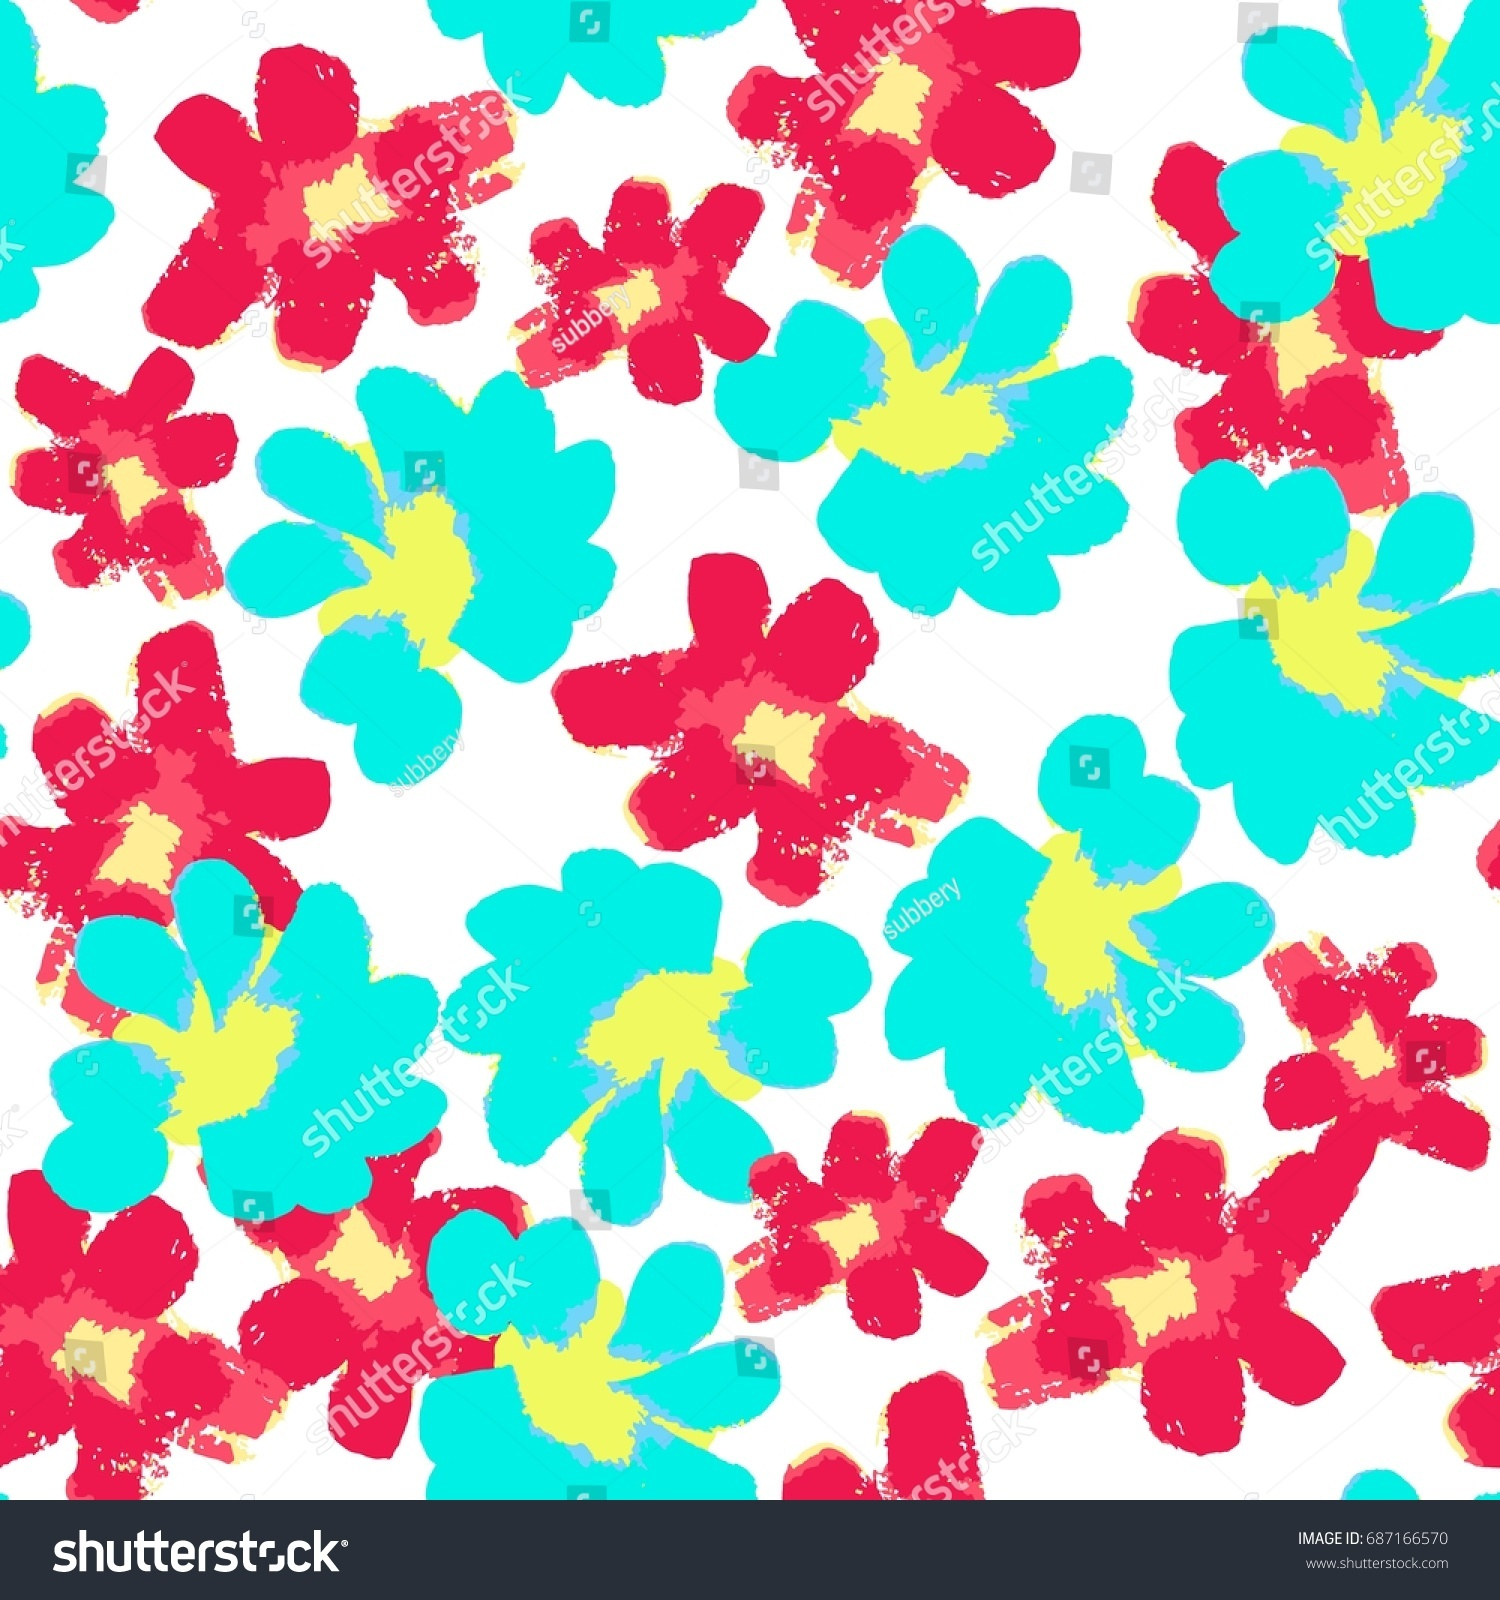 Cute Summer Hand Drawn Floral Seamless Art Pattern Pop Style Bright Color Wallpapers